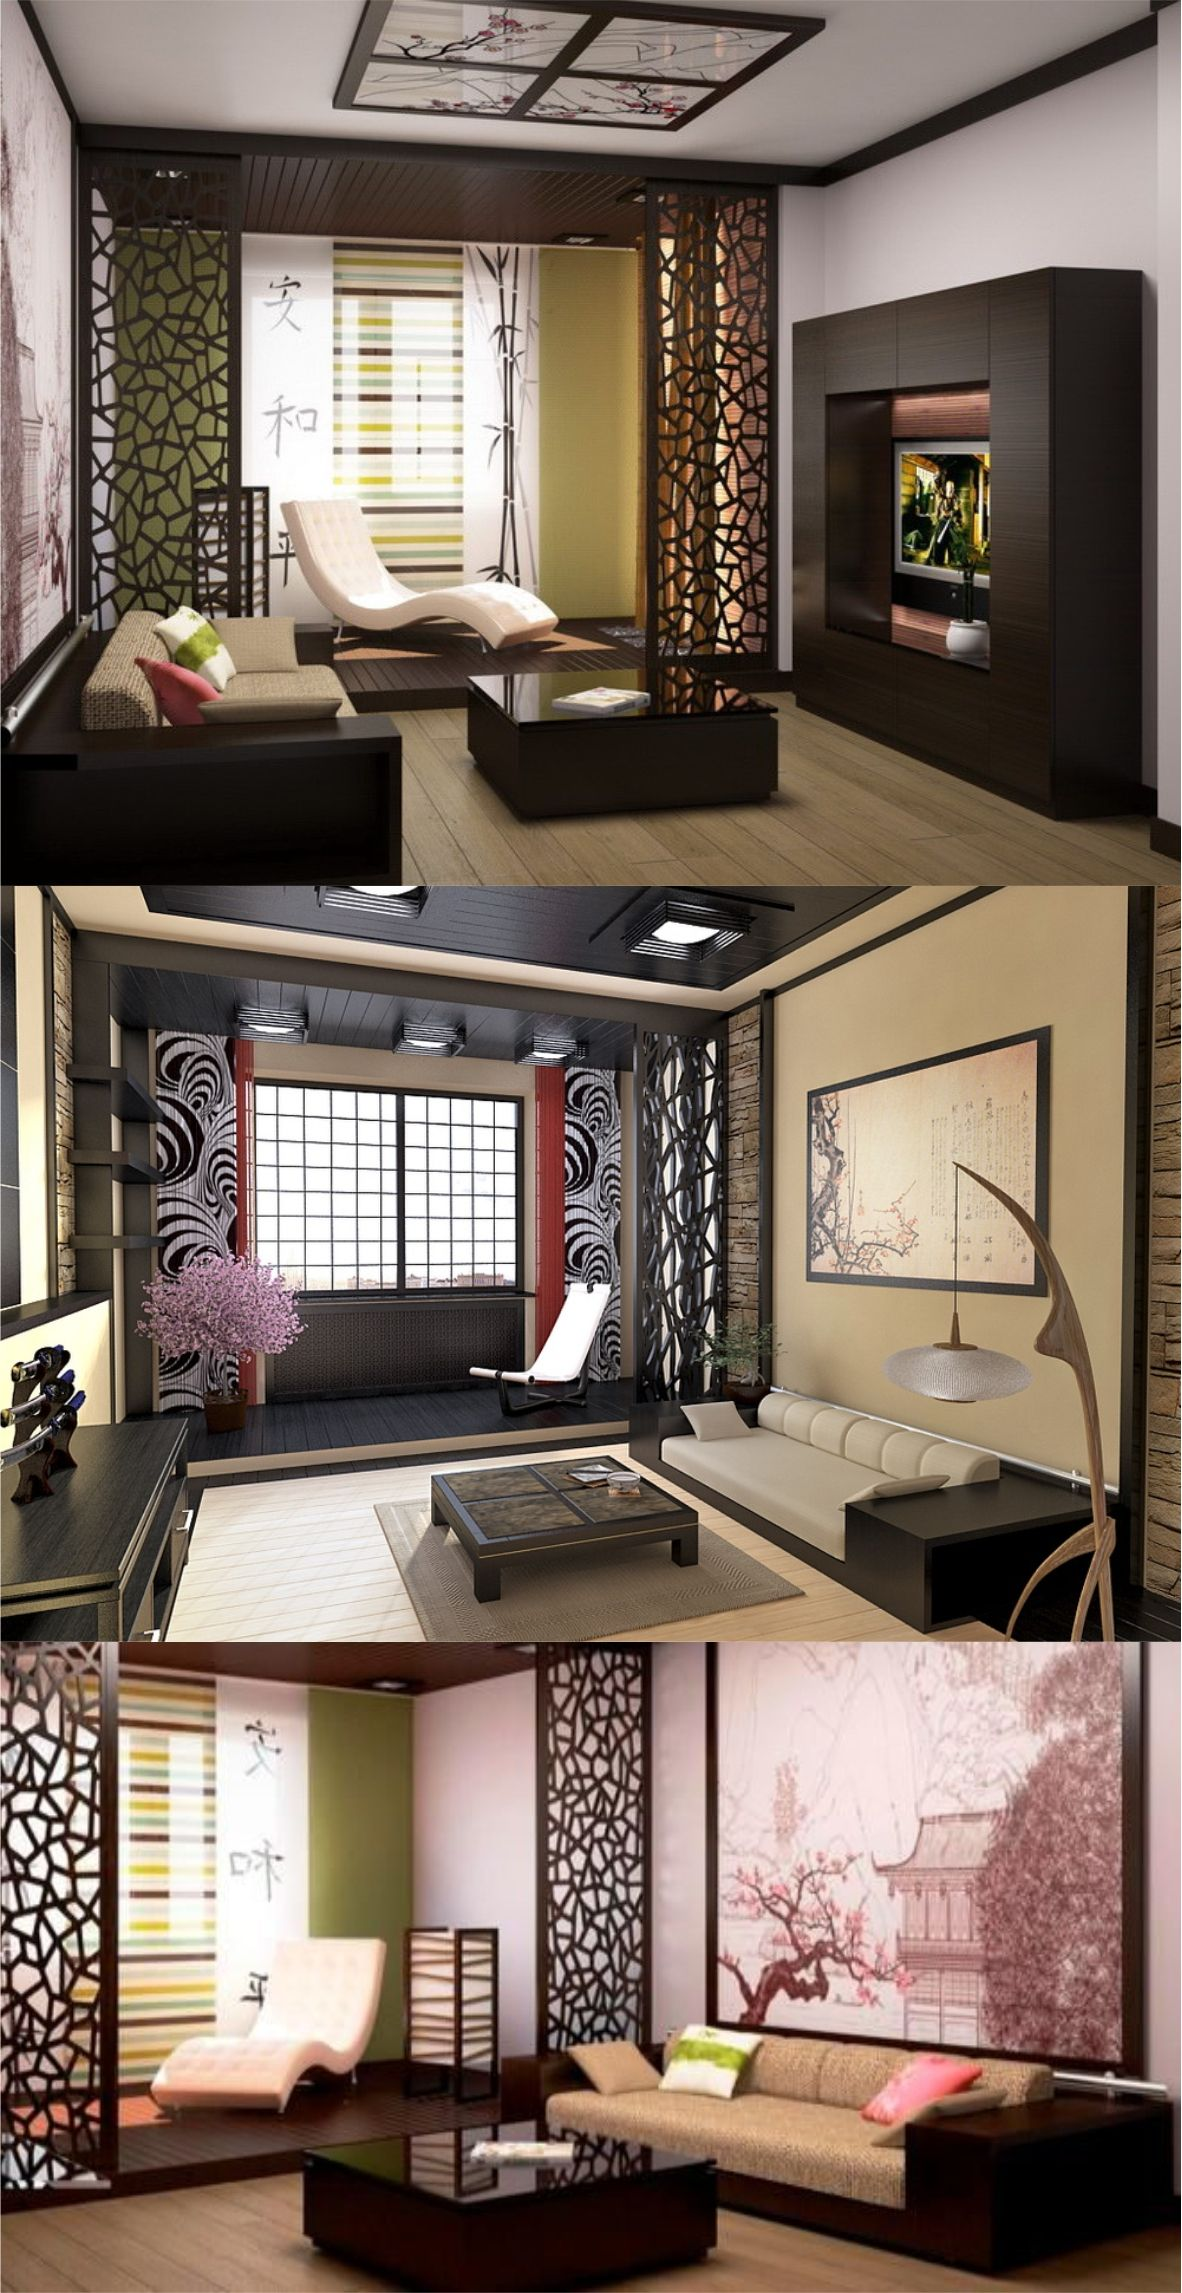 Japanese Living Room Interior As A Significant Part Of The Whole Asian Culture And Lif Japanese Living Rooms Japanese Living Room Decor Small Space Living Room